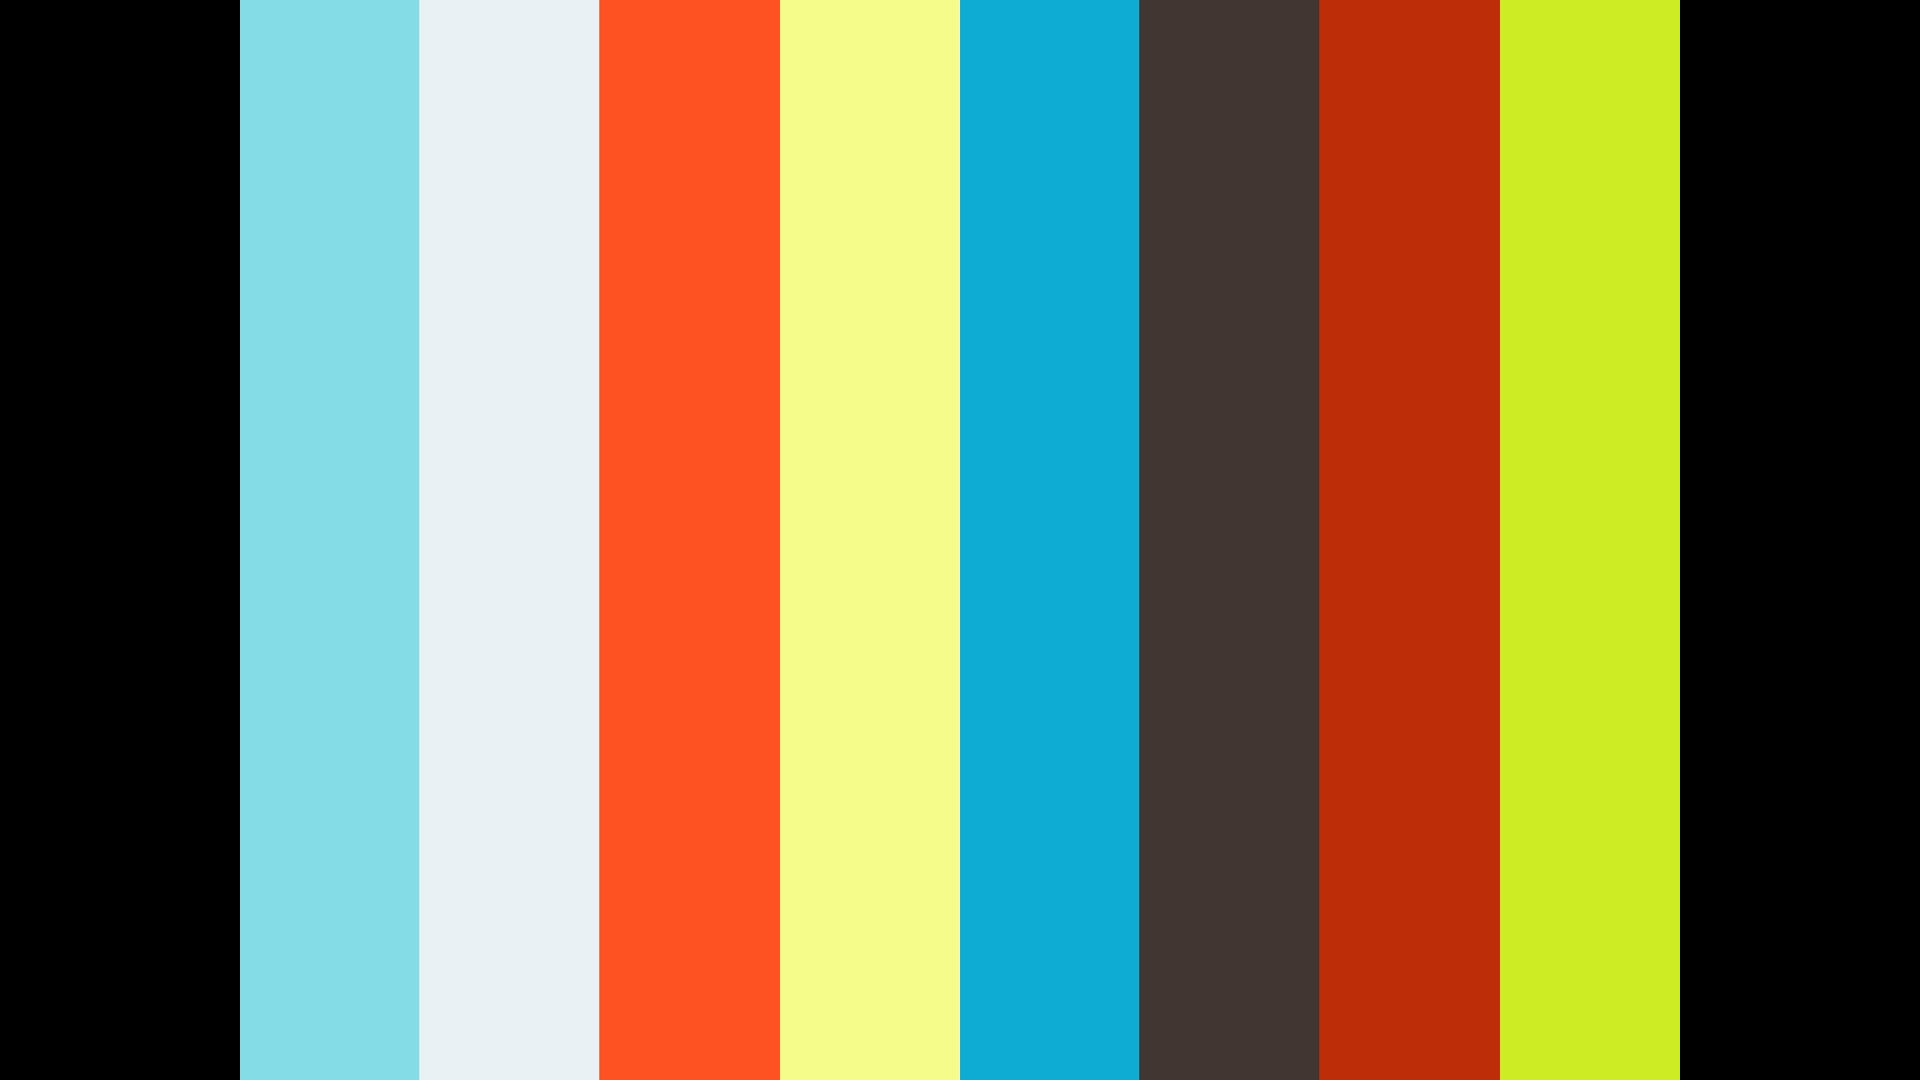 Sharing the power of photography around the world - Foundry Photojournalism Workshop: Guatemala